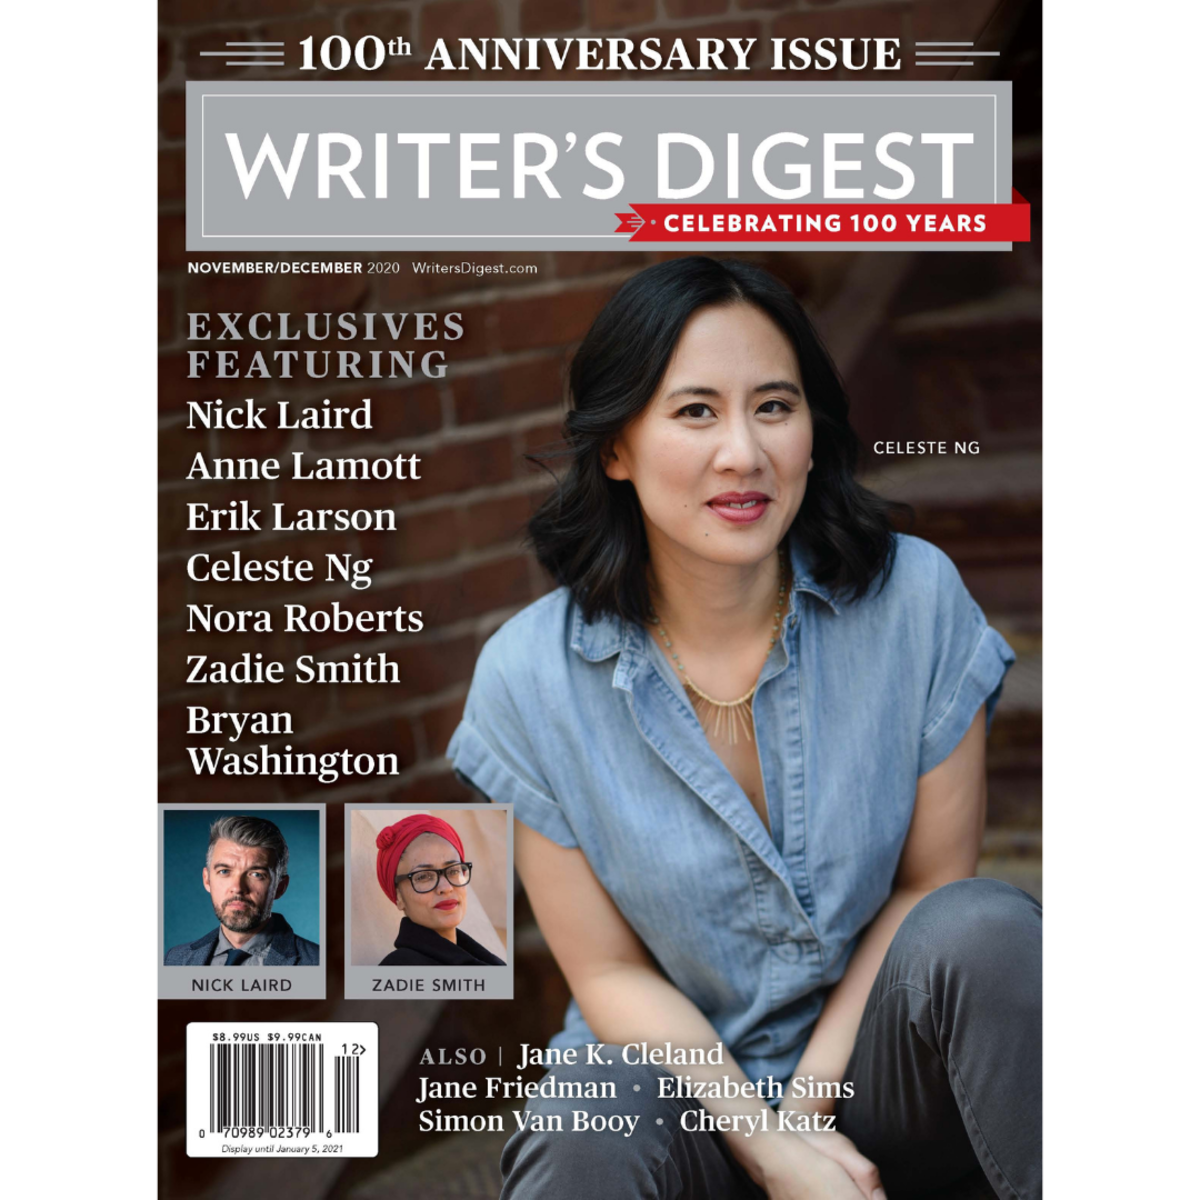 WD 100th Anniversary cover featuring Celeste Ng, author of Little Fires Everywhere.